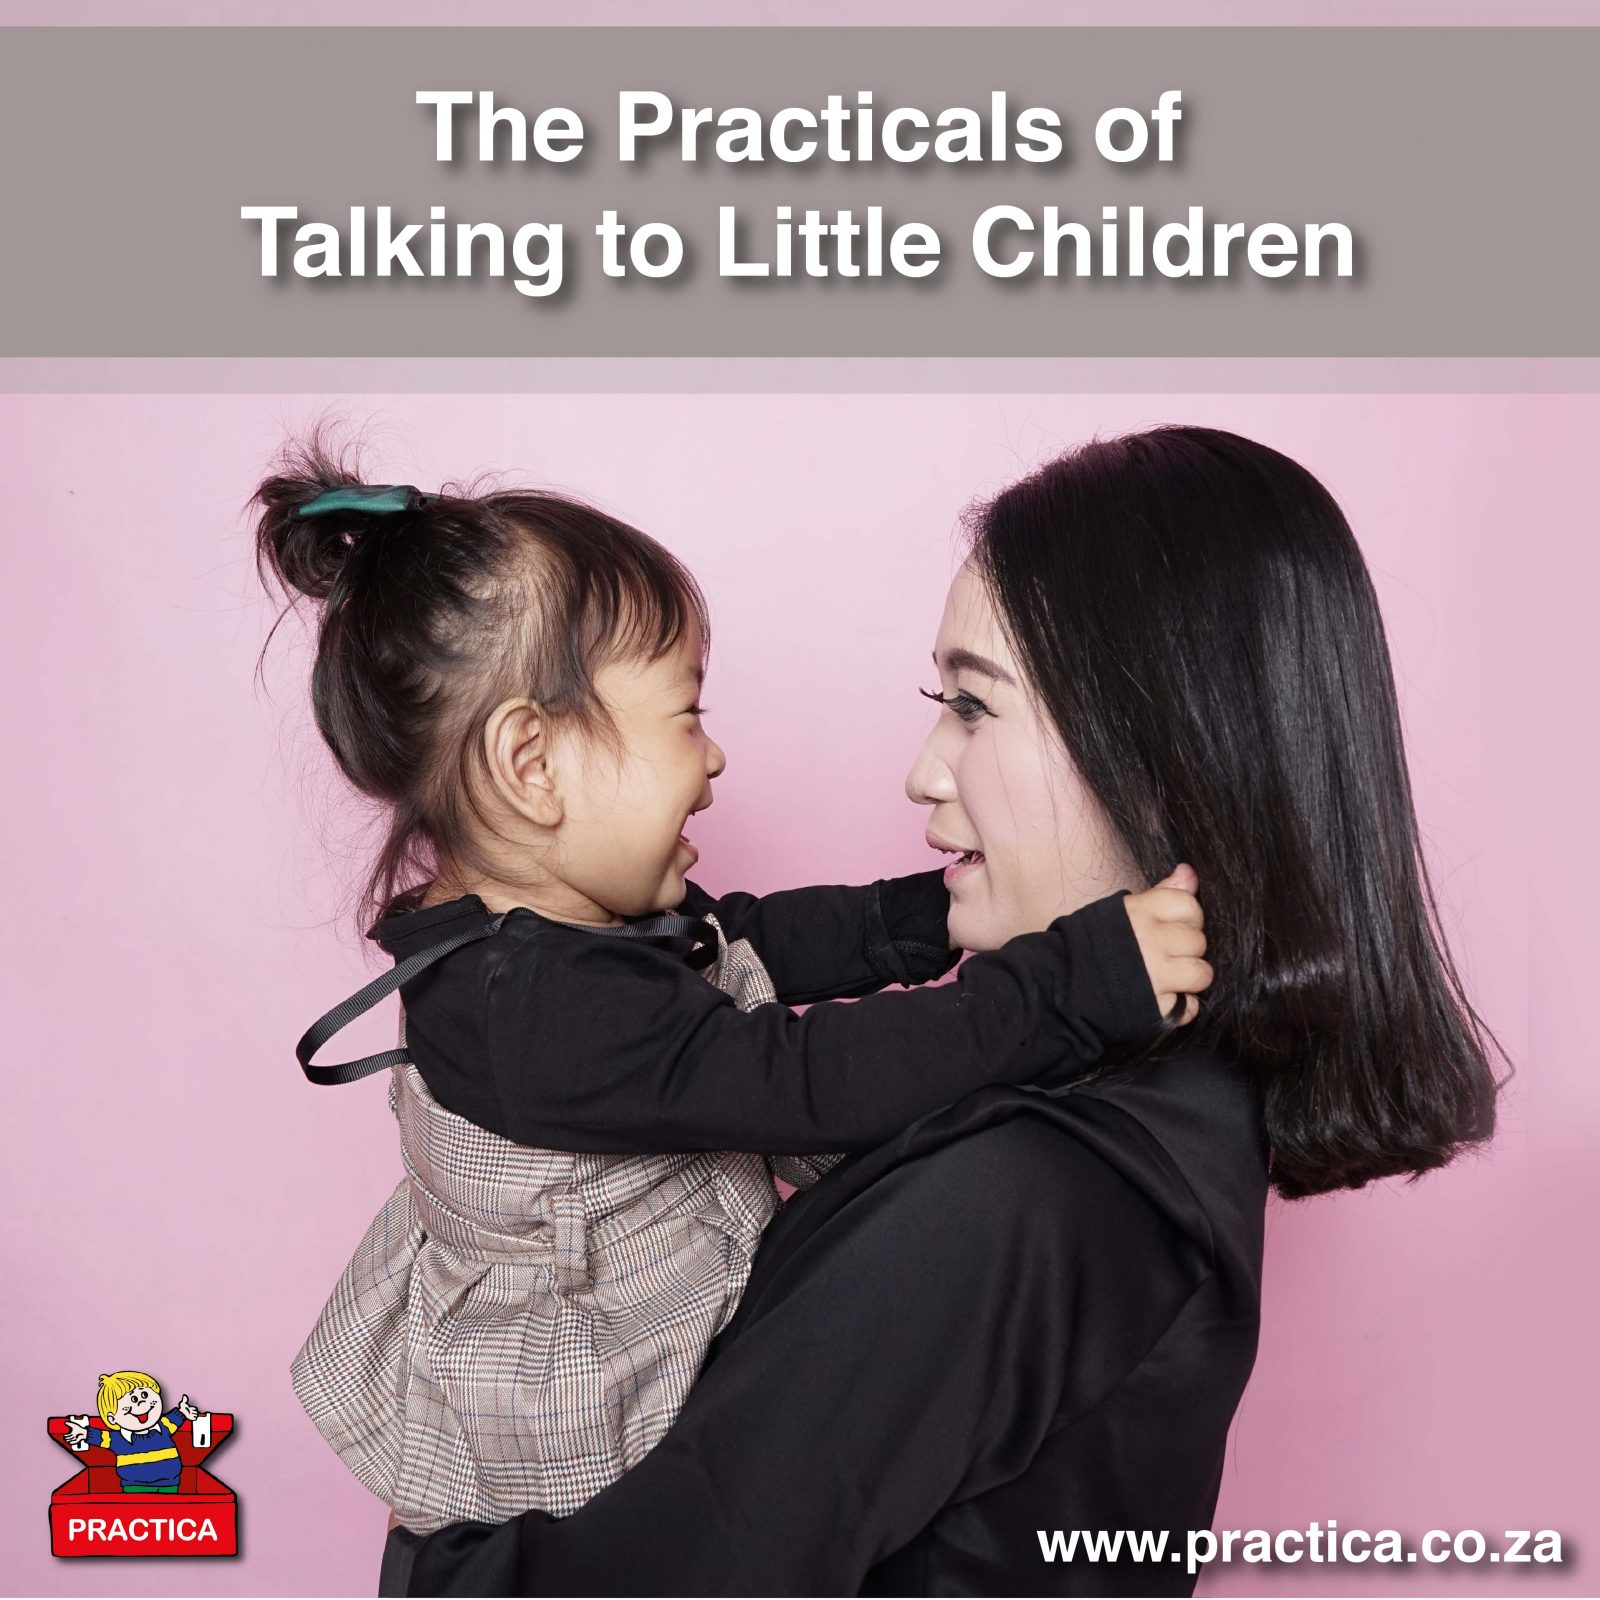 Practica Blog - The Practicals of Talking to Little Children